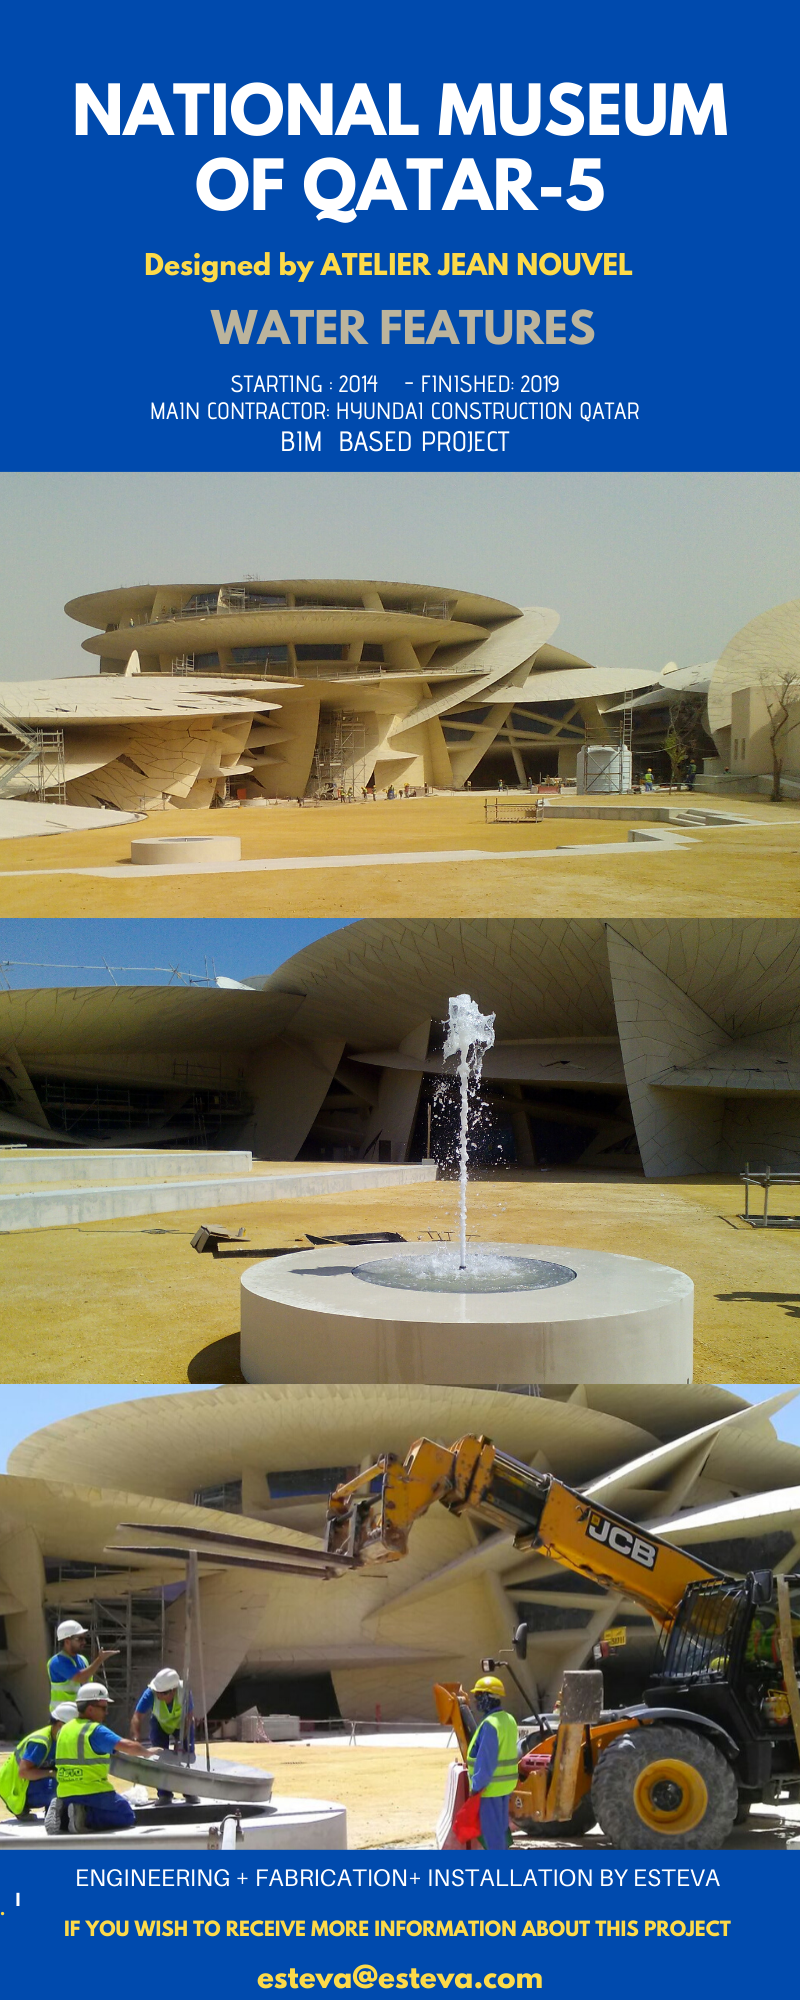 NATIONAL MUSEUM OF QATAR WATERFEATURES